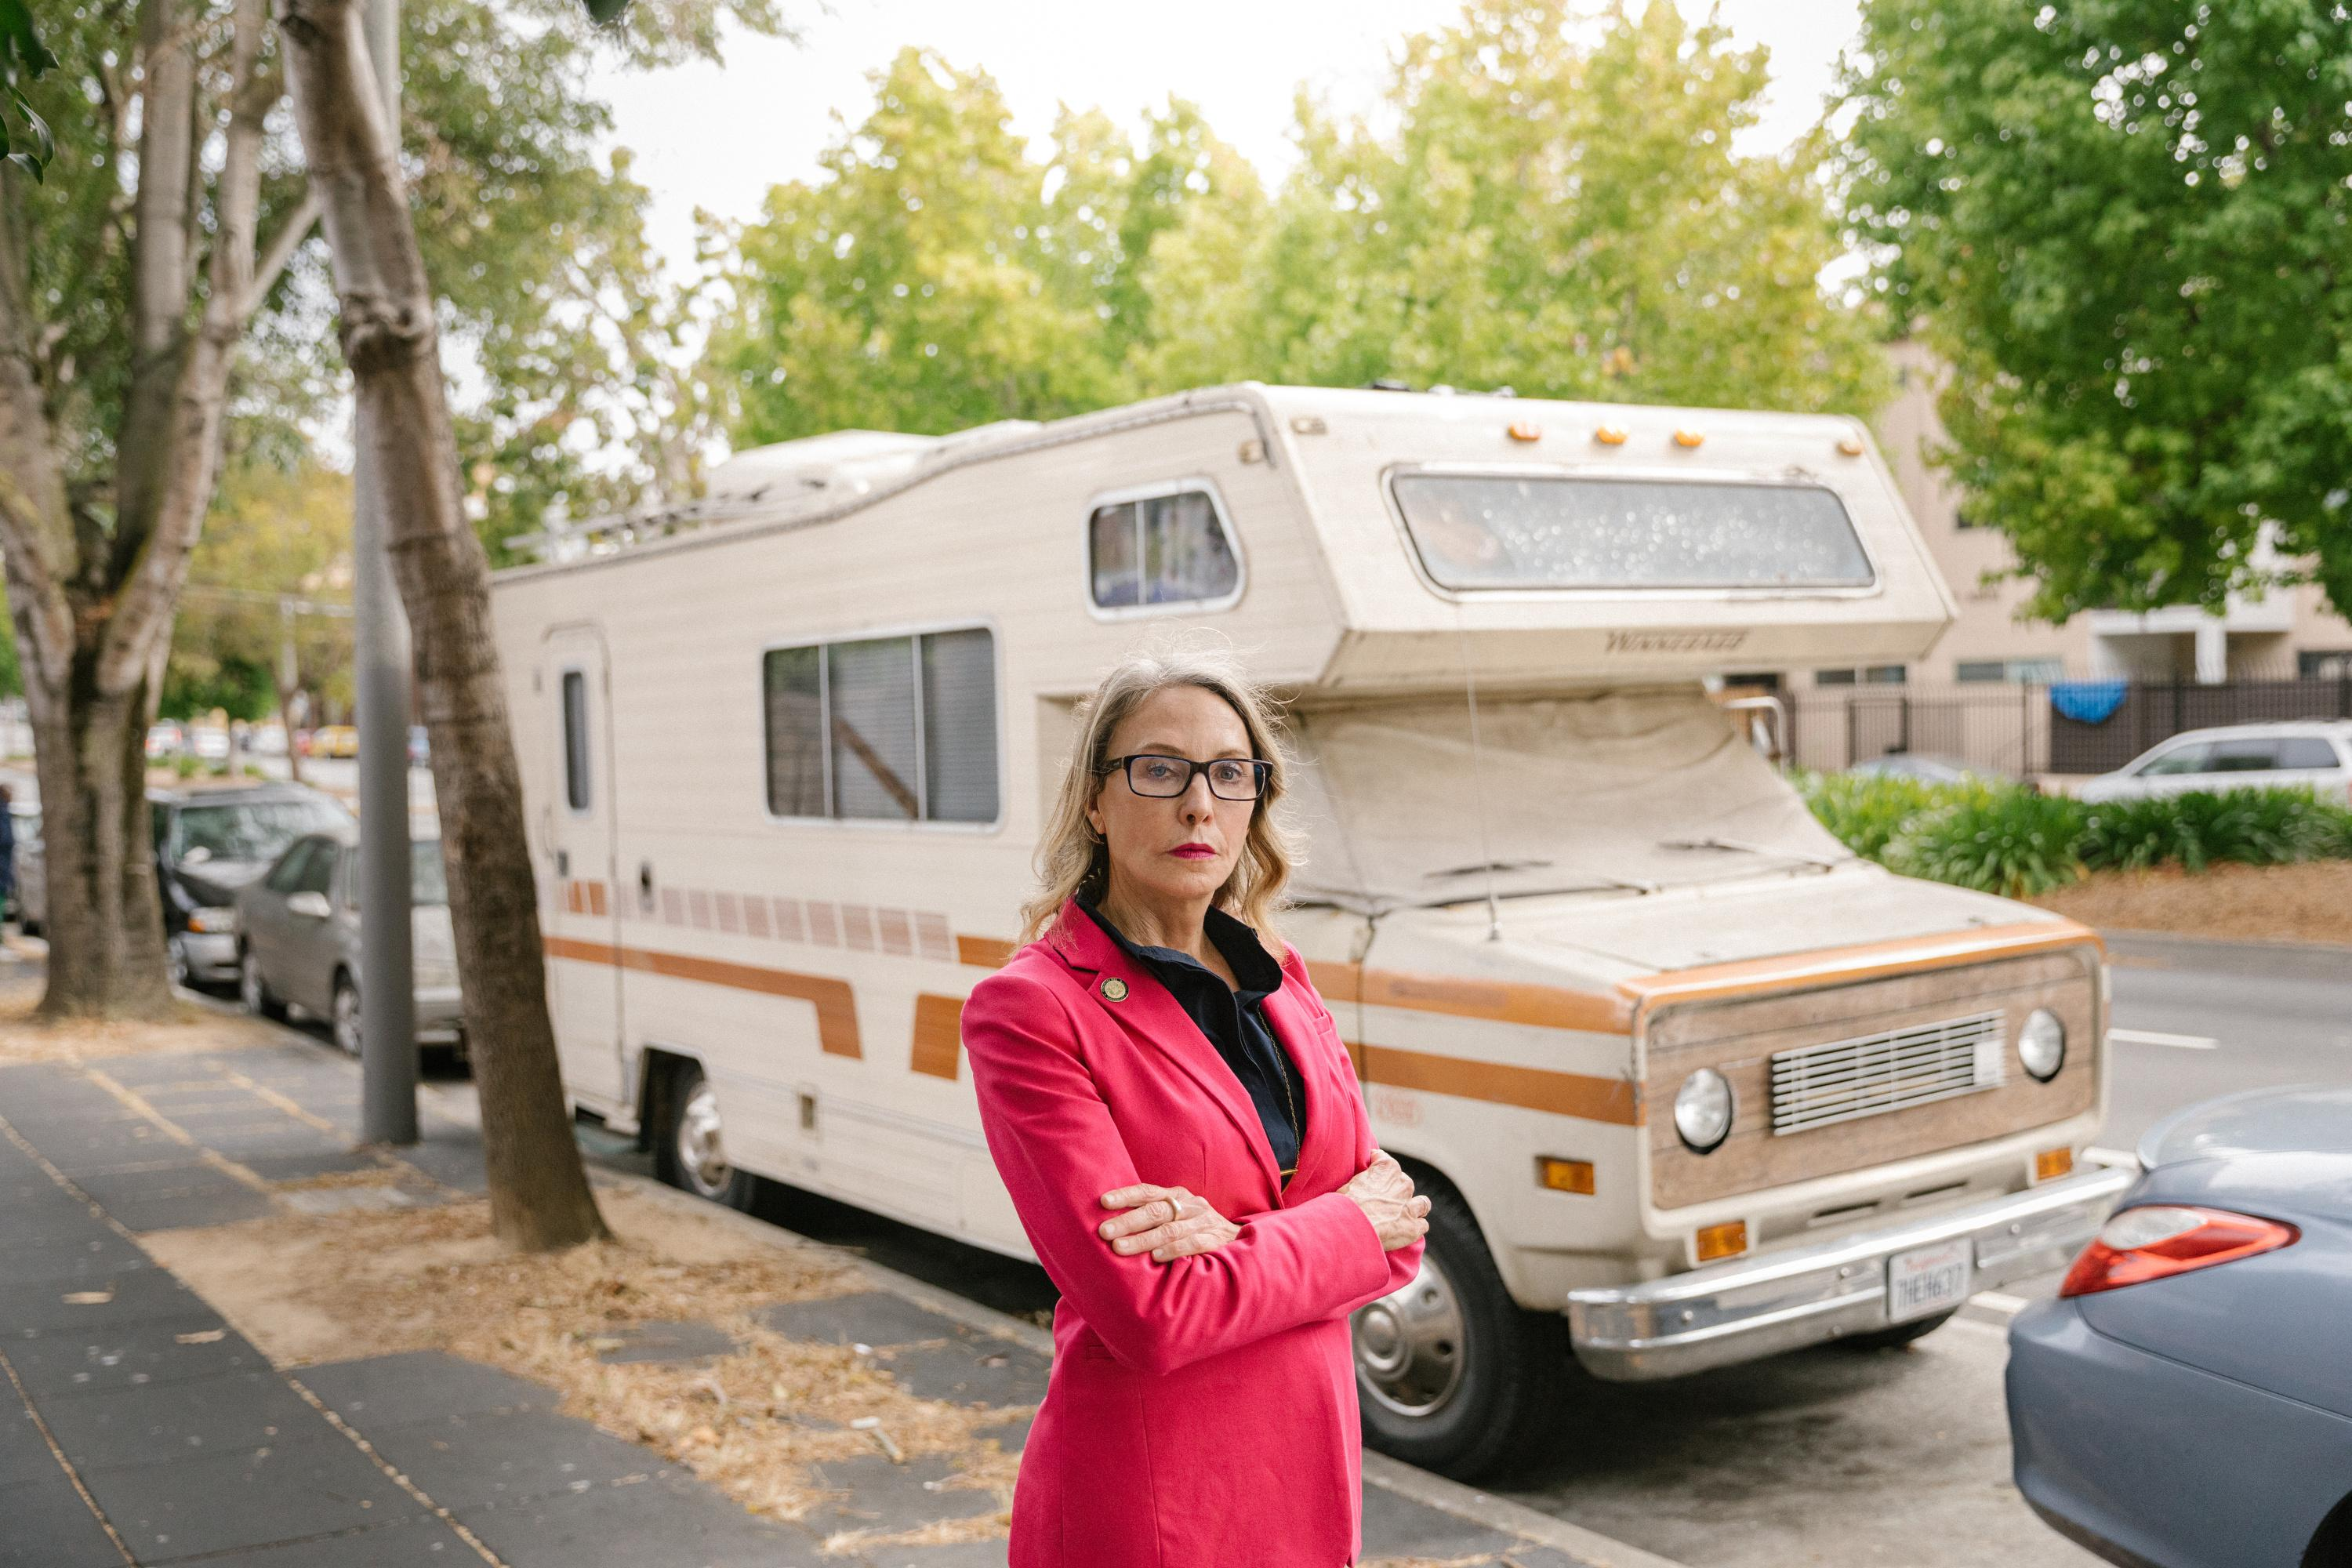 The Californians forced to live in cars and RVs